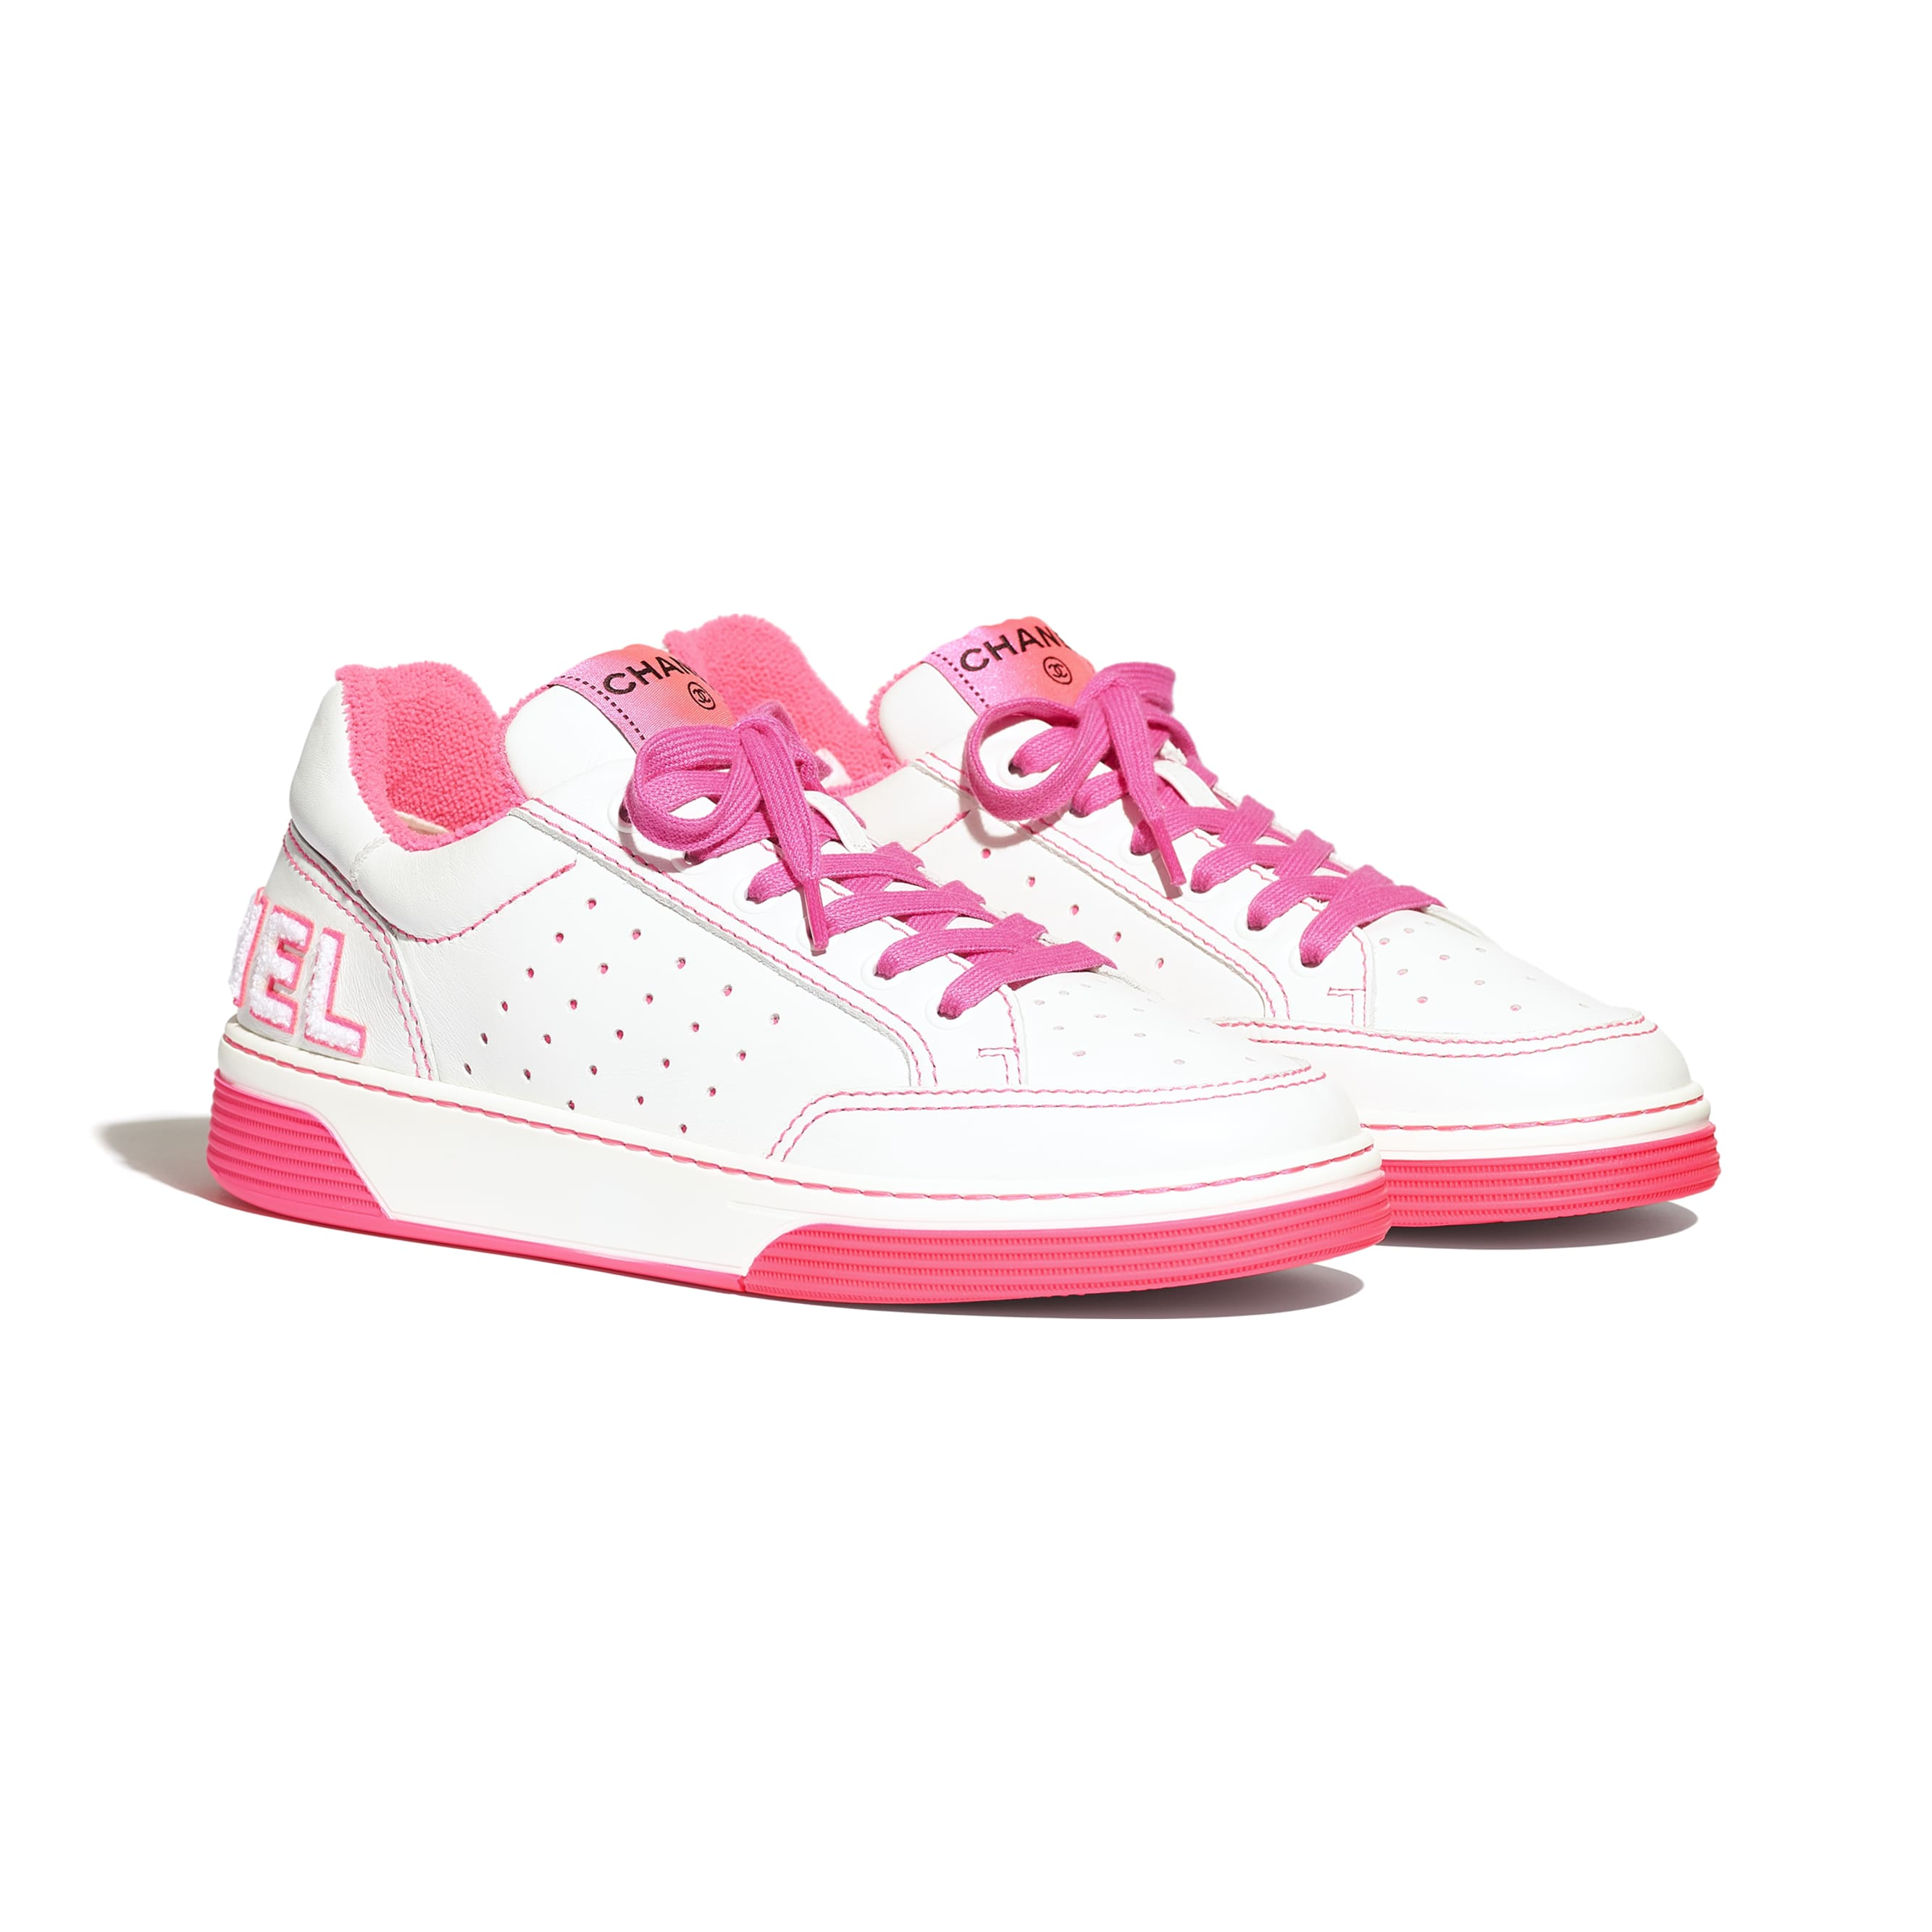 Trainers - White & Fuchsia - Calfskin - Alternative view - see standard sized version